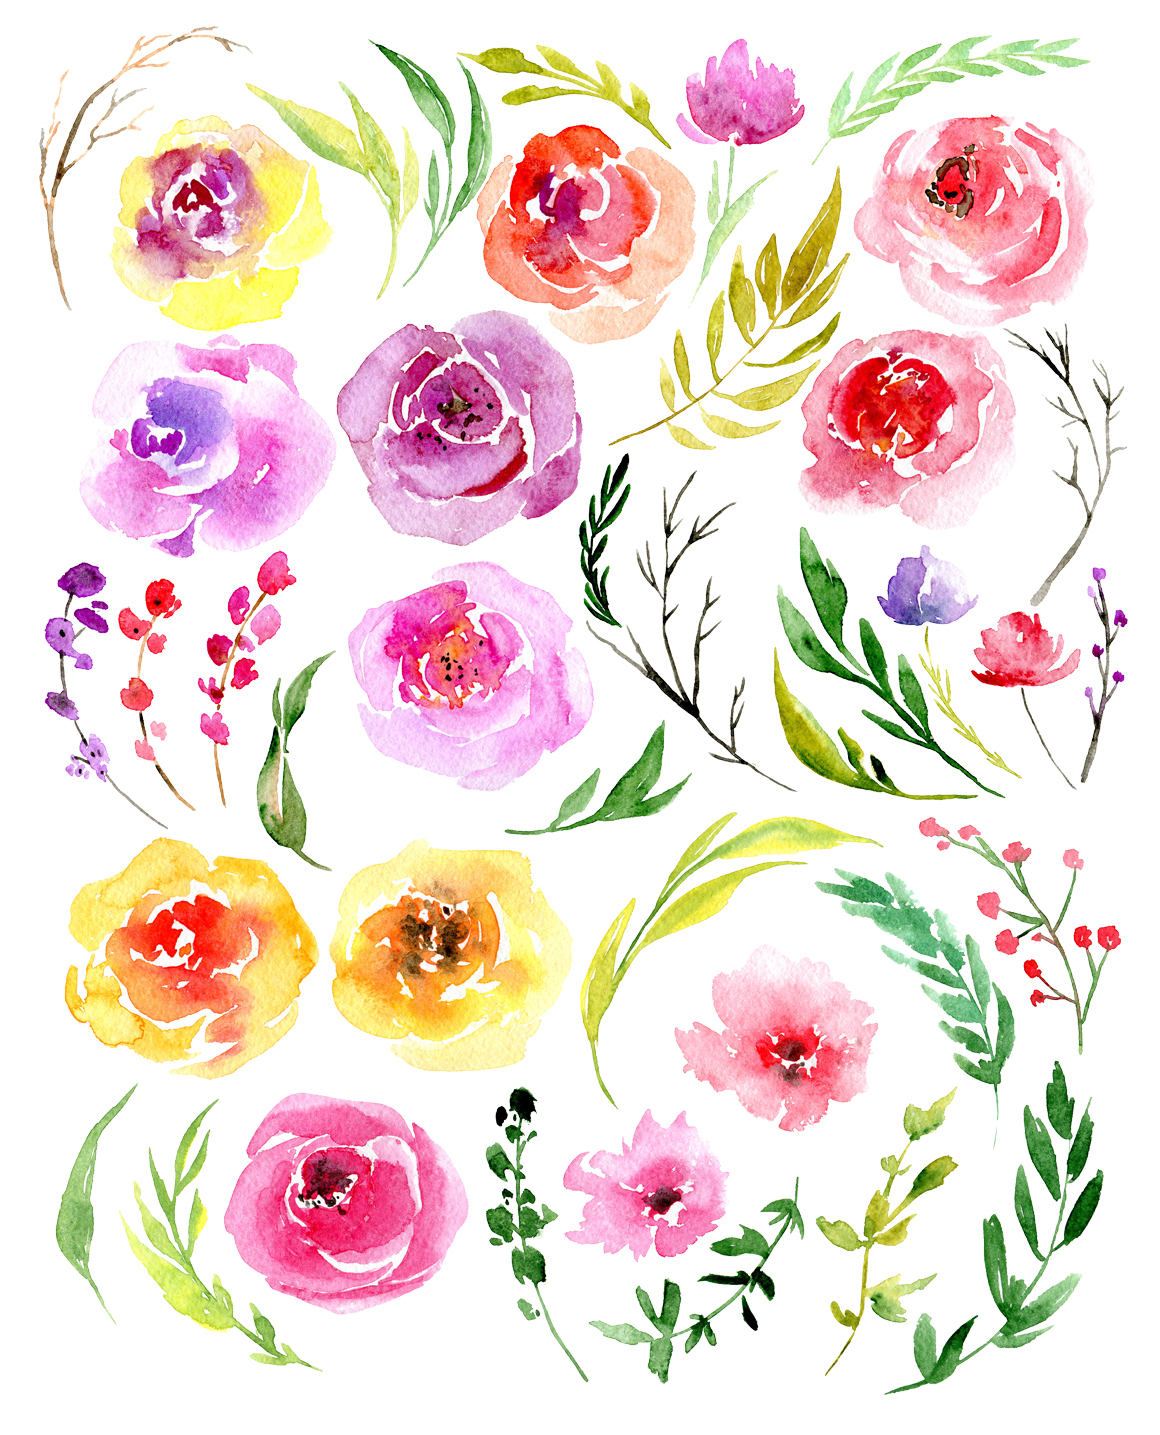 Watercolor flowers, branches, leaves example image 2